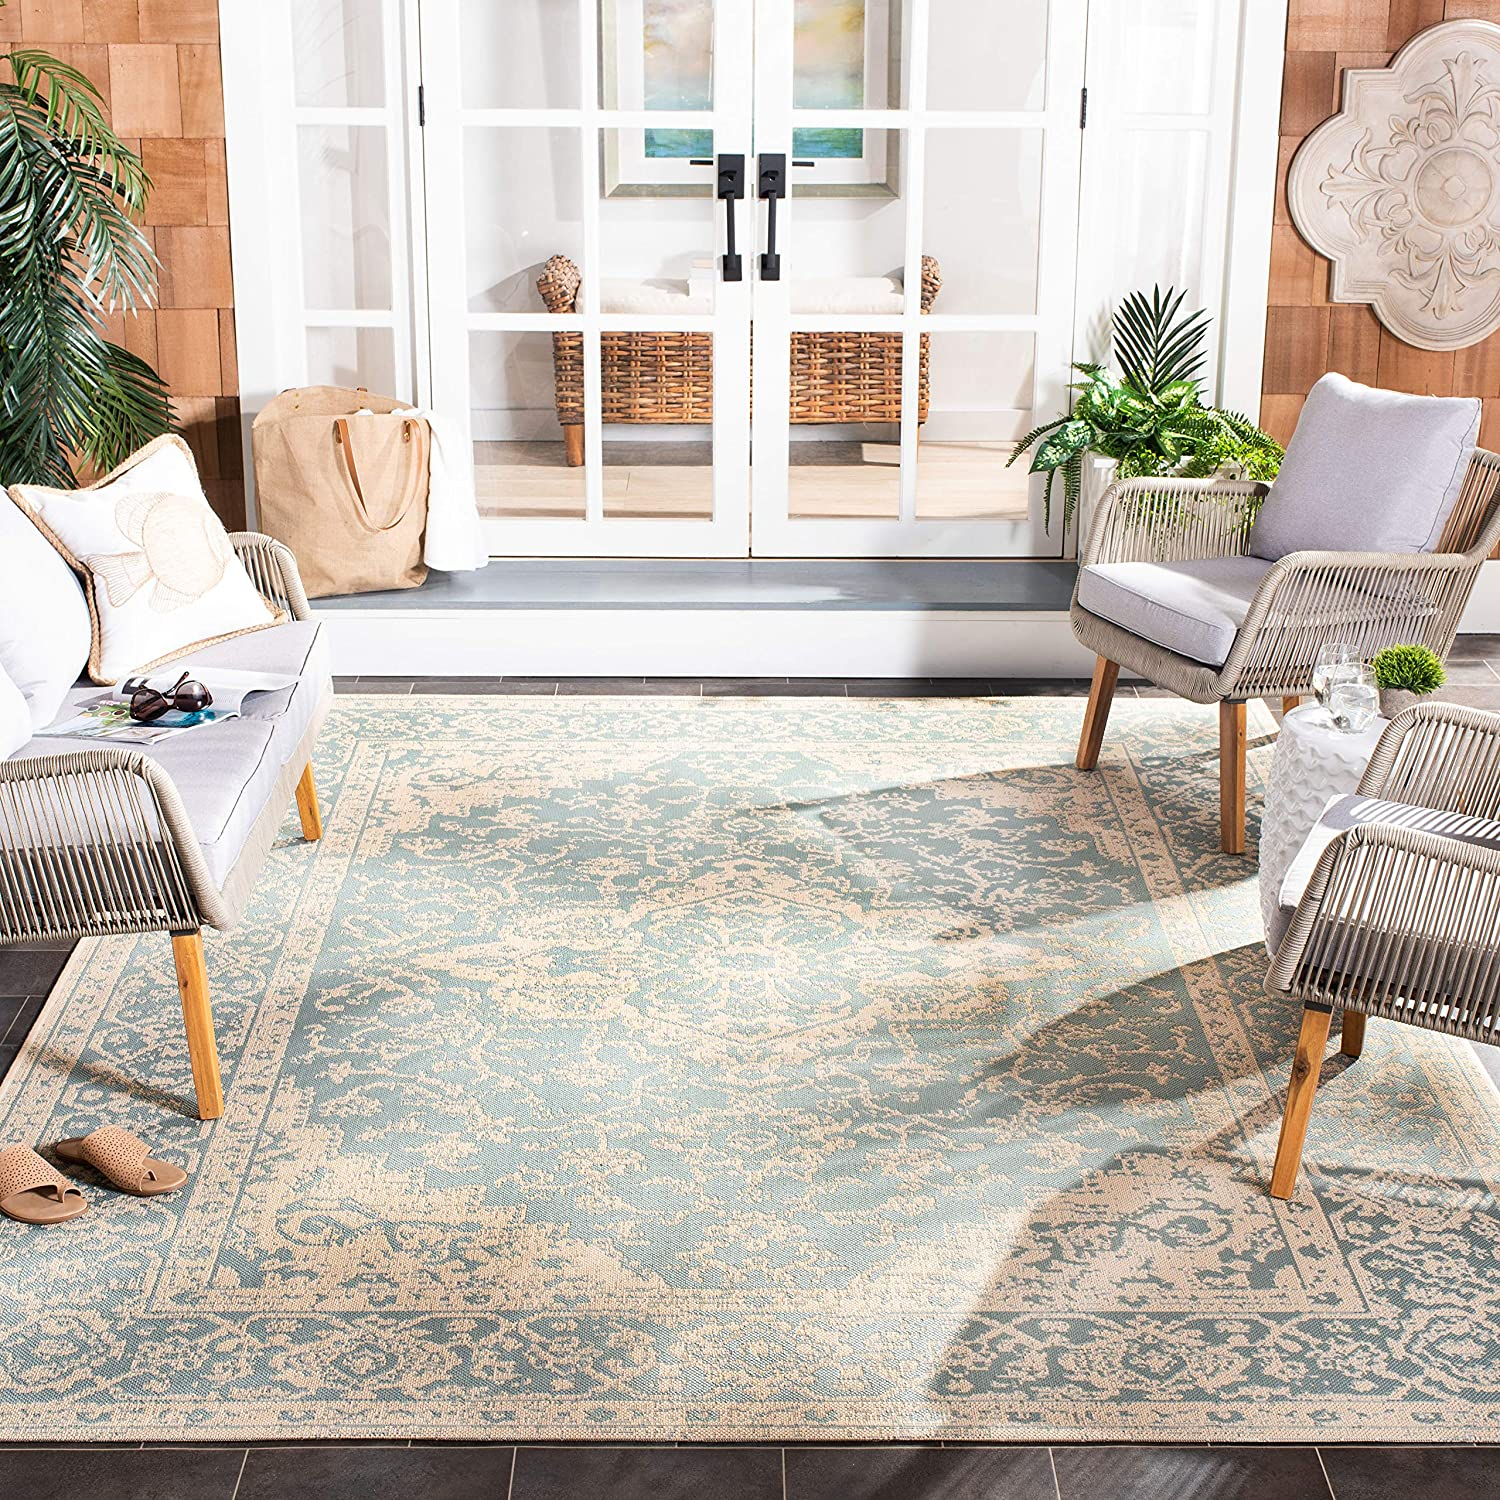 Safavieh Beach House Collection Bhs137k Indoor Outdoor Non Shedding Stain Resistant Patio Backyard Area Rug 8 X 10 Aqua Cream Furniture Decor